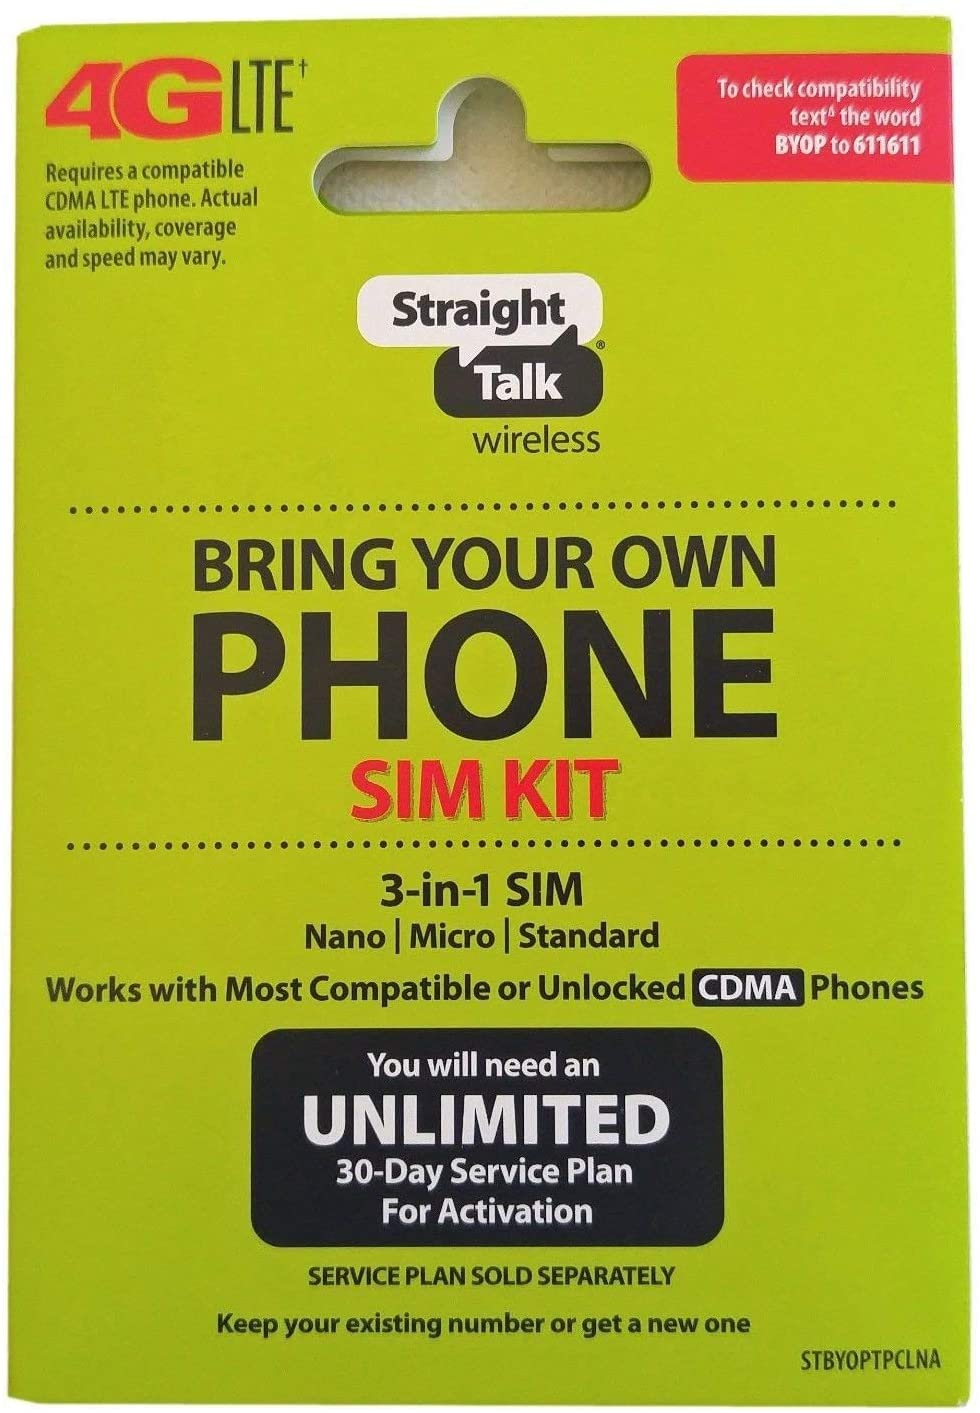 Straight Talk Verizon 4G LTE 3G CDMA Bring Your Own Phone Activation Kit 71RNIiYUjML